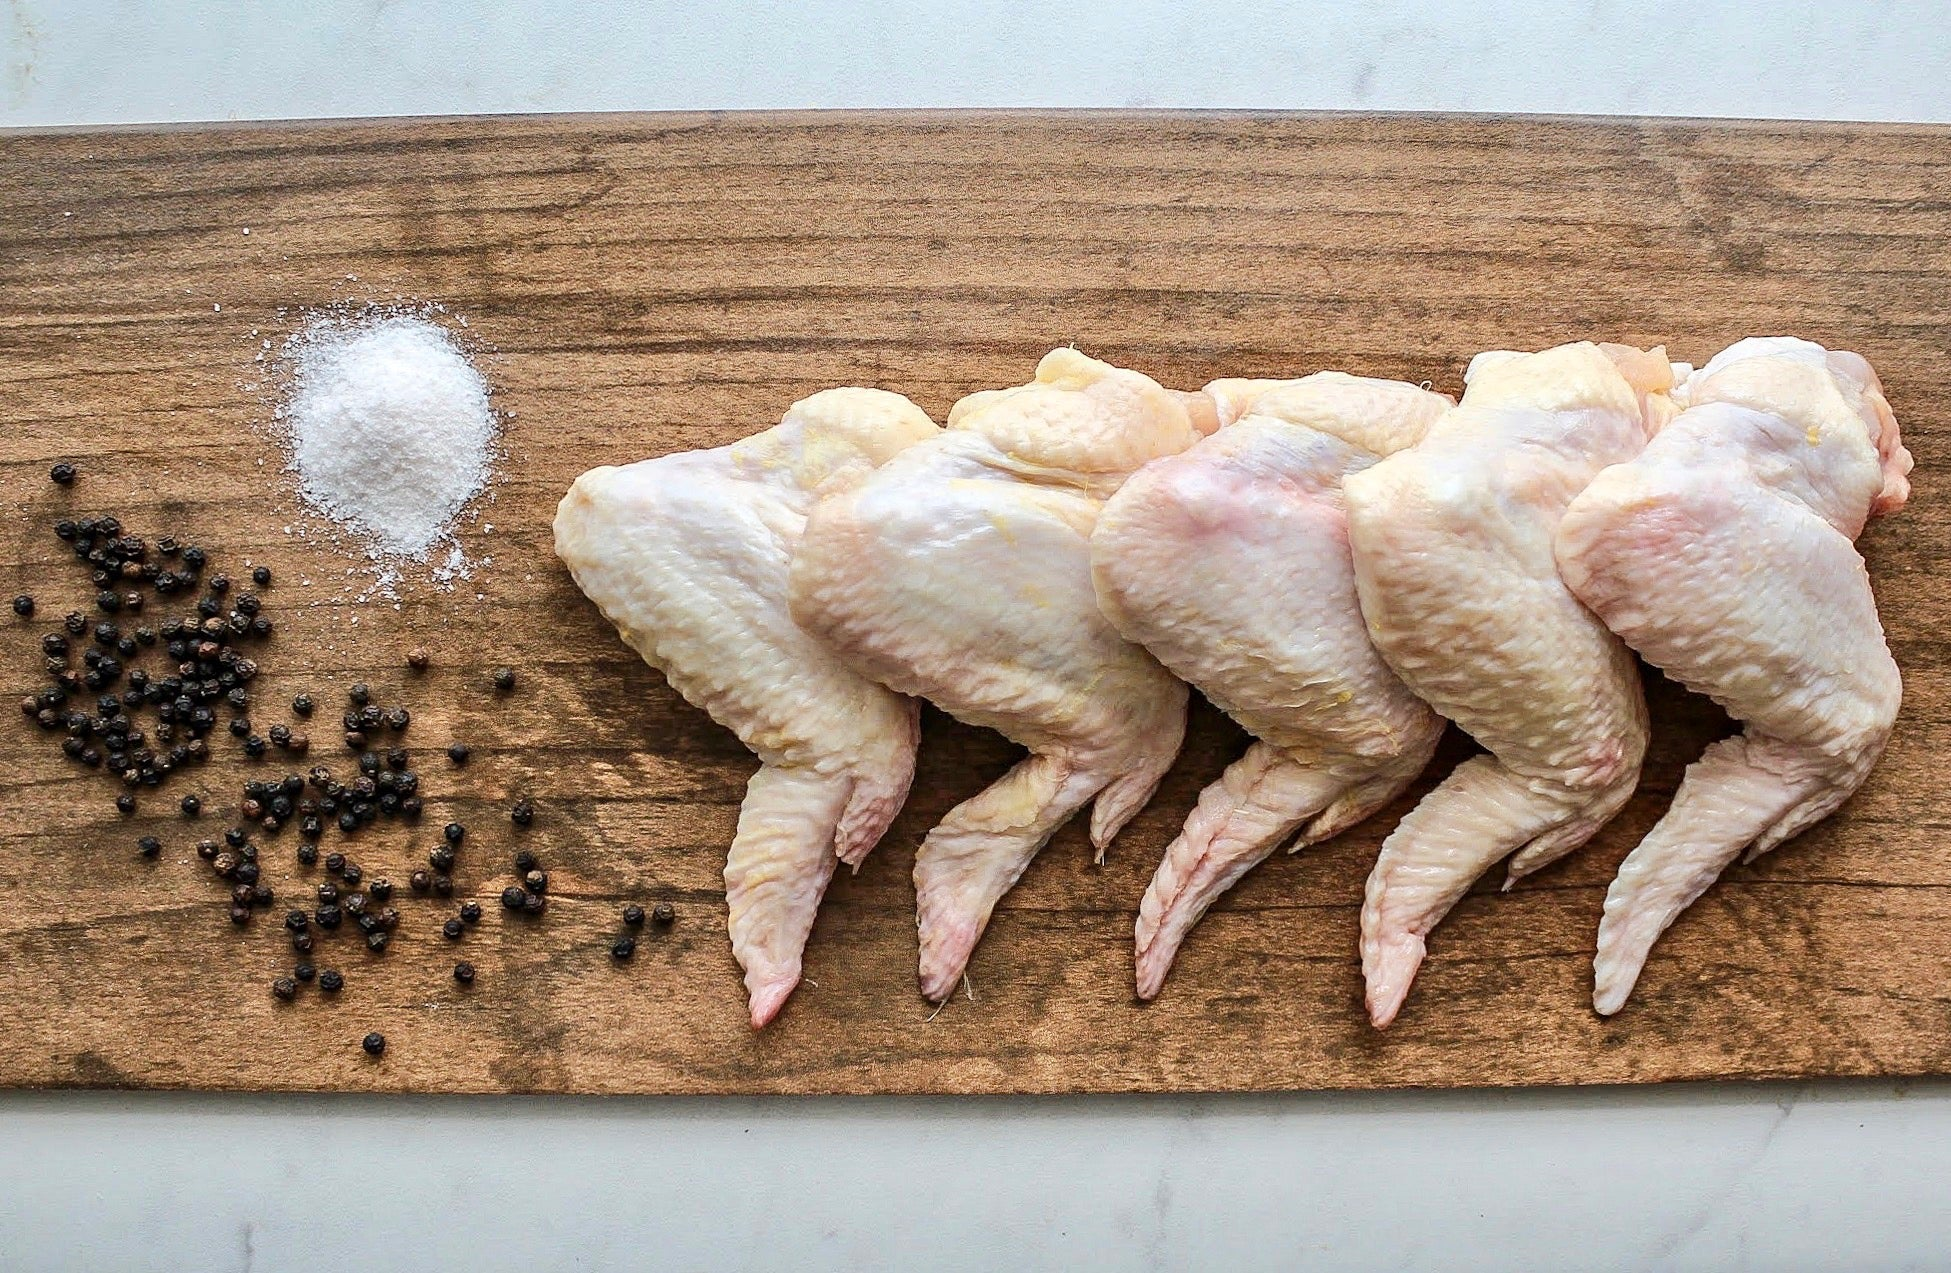 Alabama Organic Pastured Chicken Wings. NON-GMO, NO Antibiotic, Soy Free Chicken